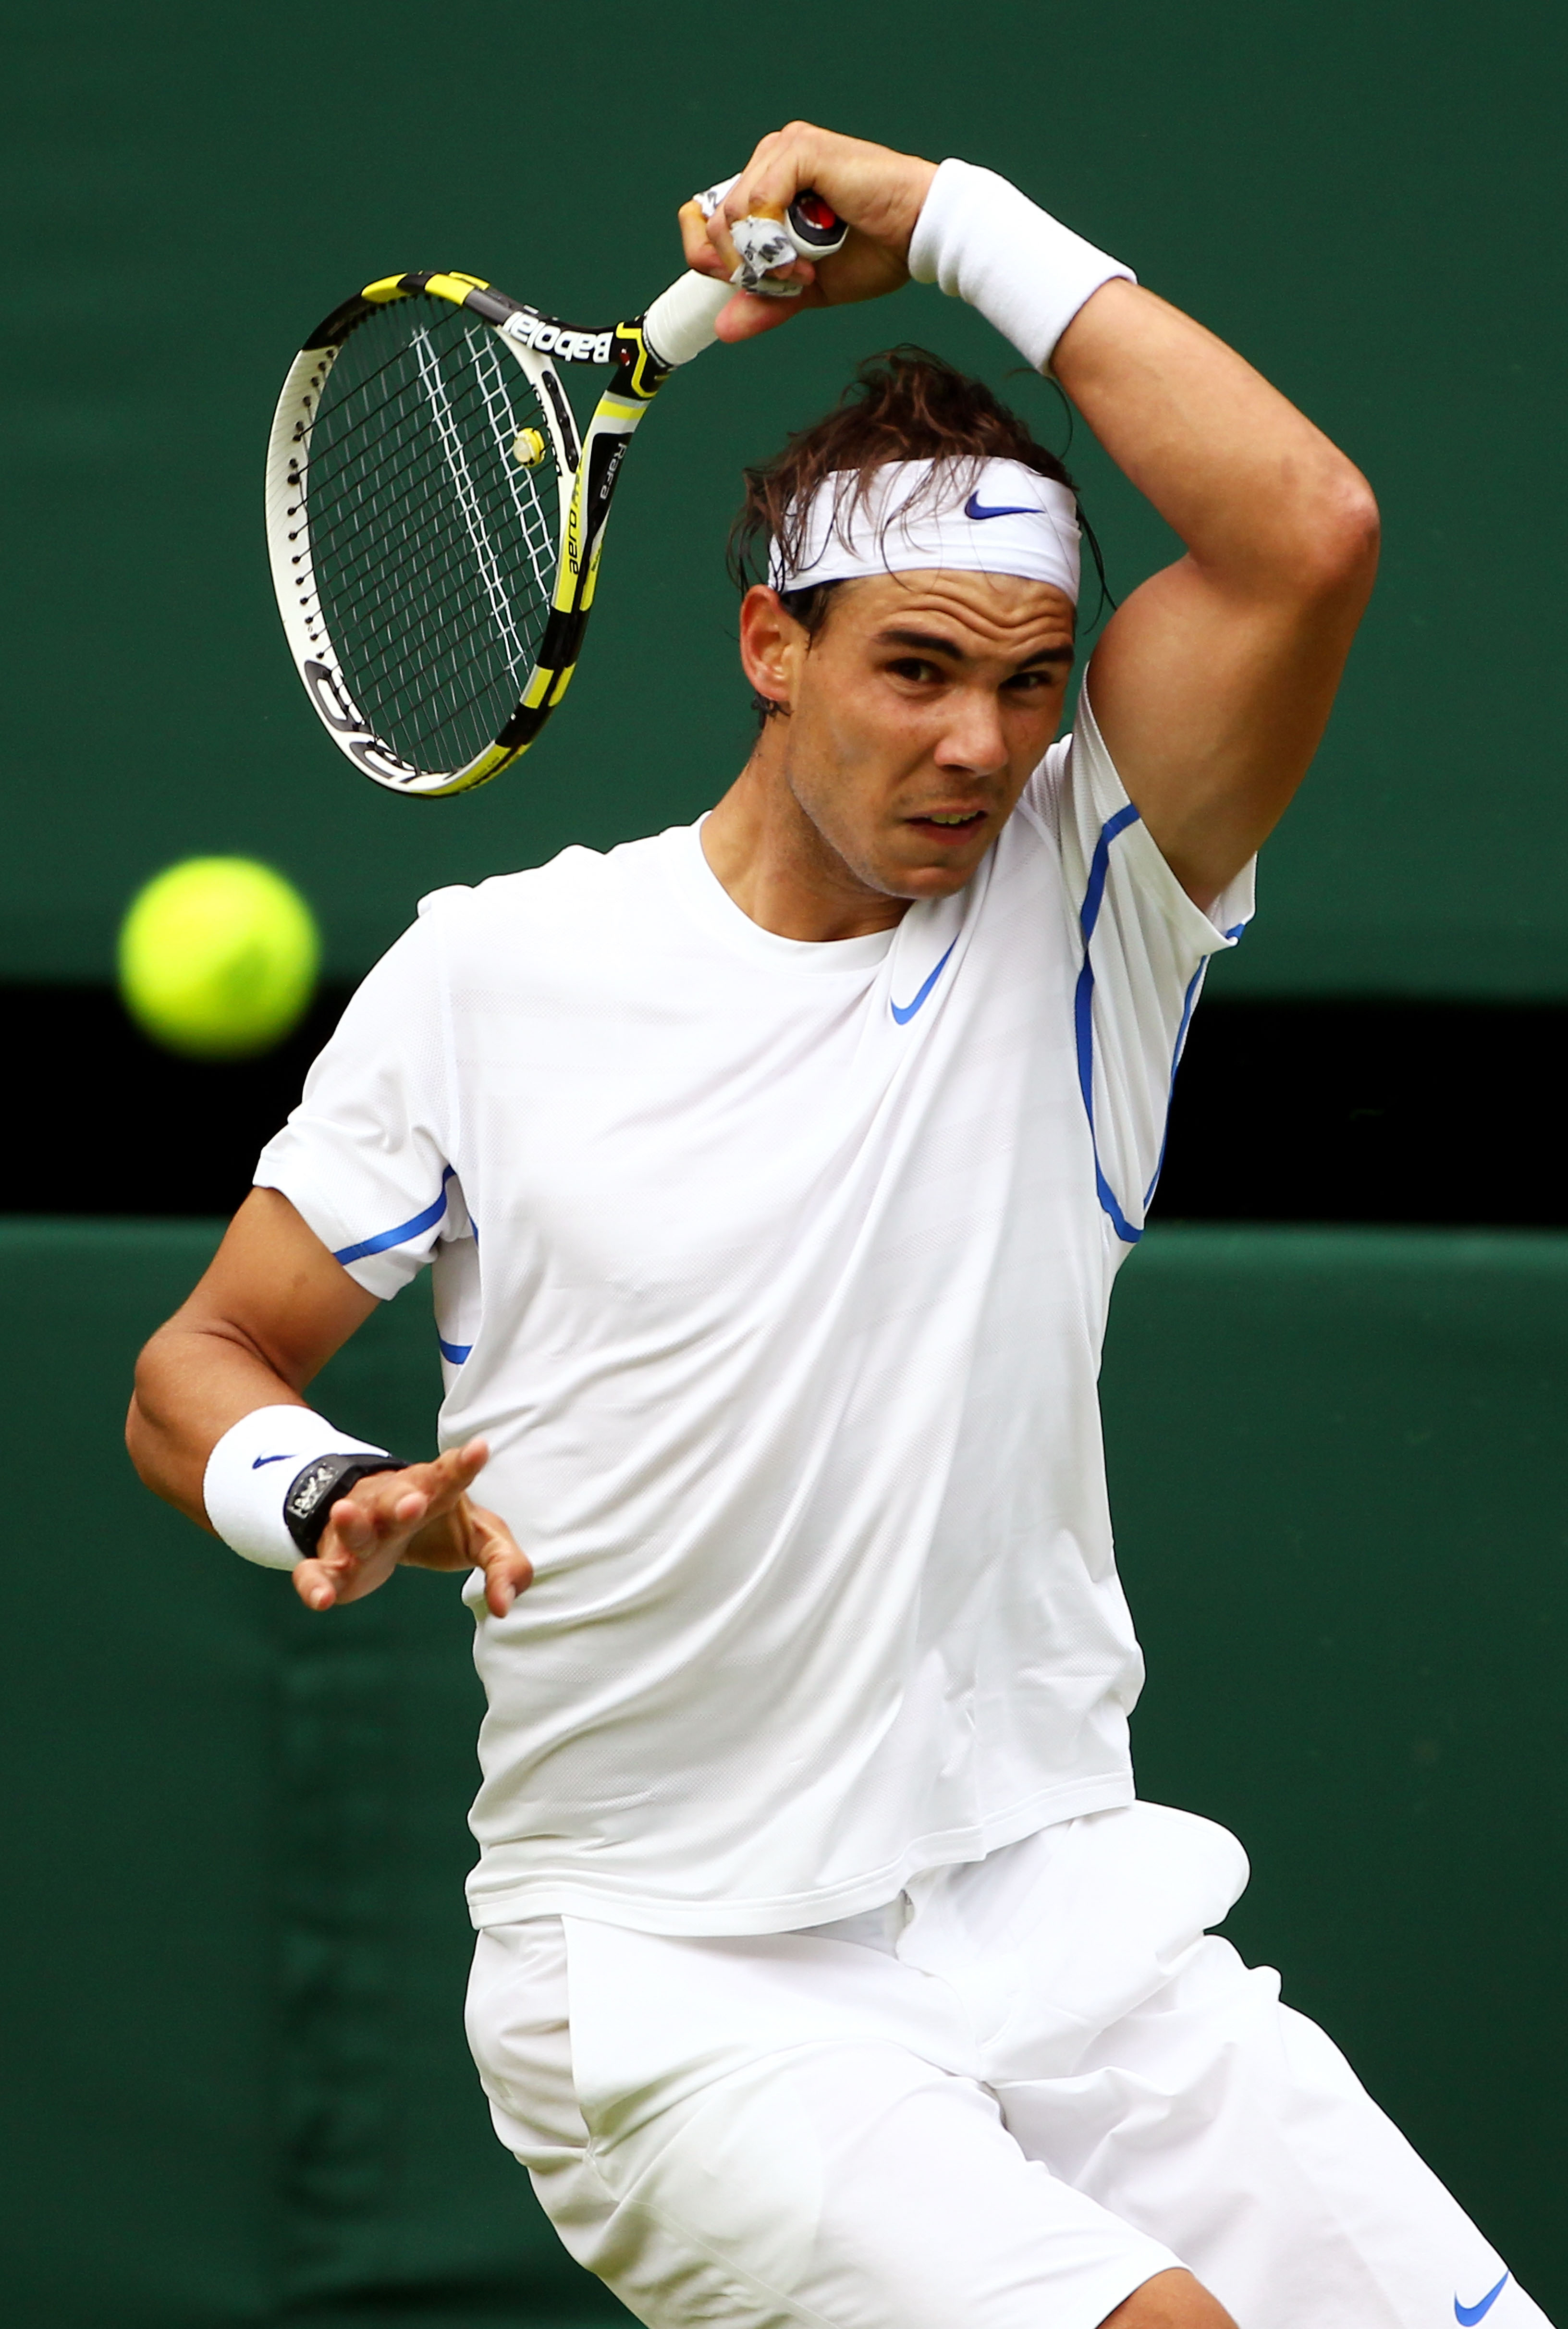 LONDON, ENGLAND - JUNE 20:  Rafael Nadal of Spain returns a shot during his first round match against Michael Russell of the United States on Day One of the Wimbledon Lawn Tennis Championships at the All England Lawn Tennis and Croquet Club on June 20, 20